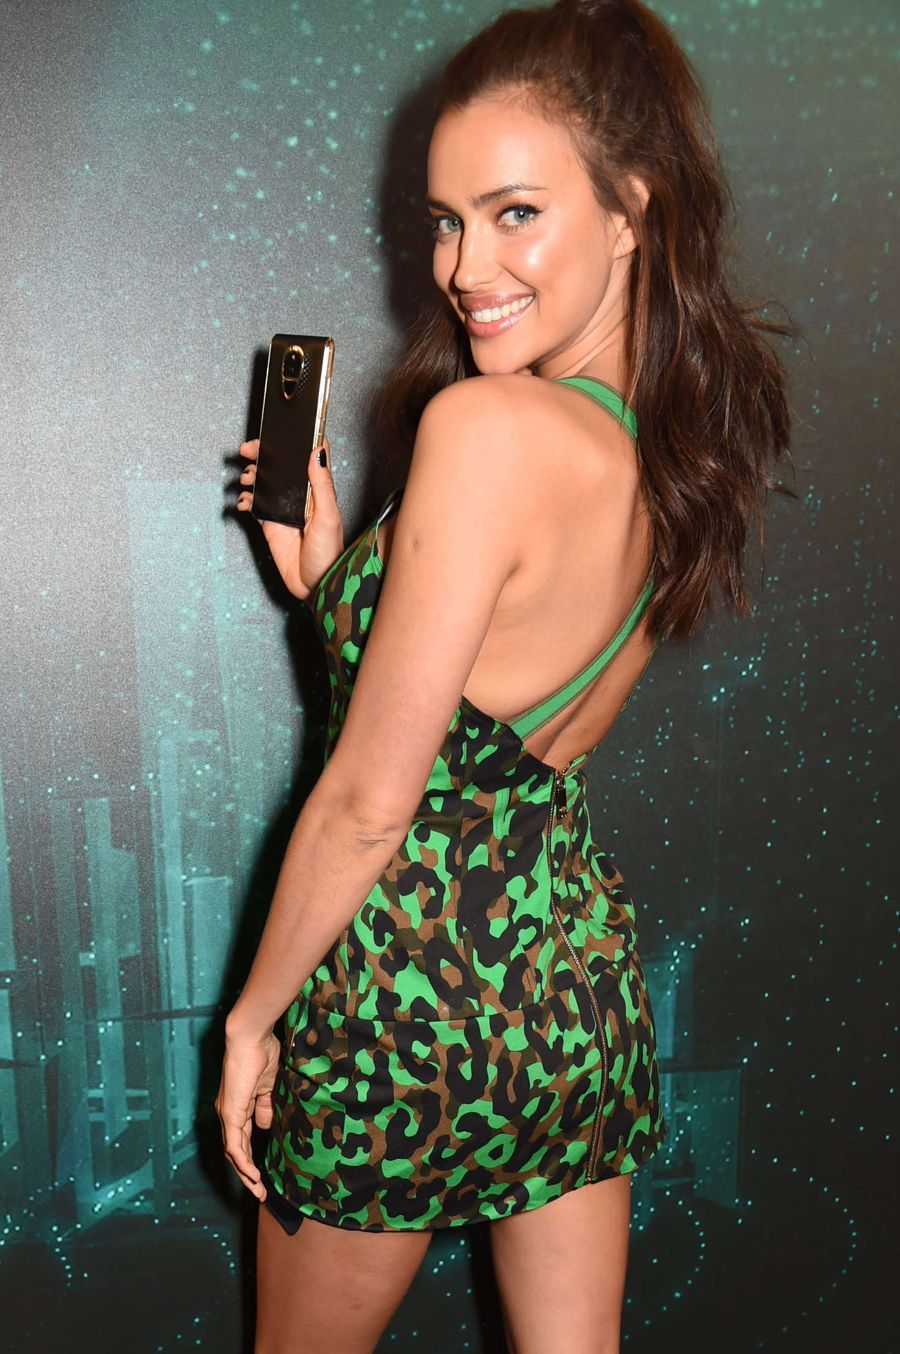 Irina Shayk - Sirin Labs VIP Launch Party in London